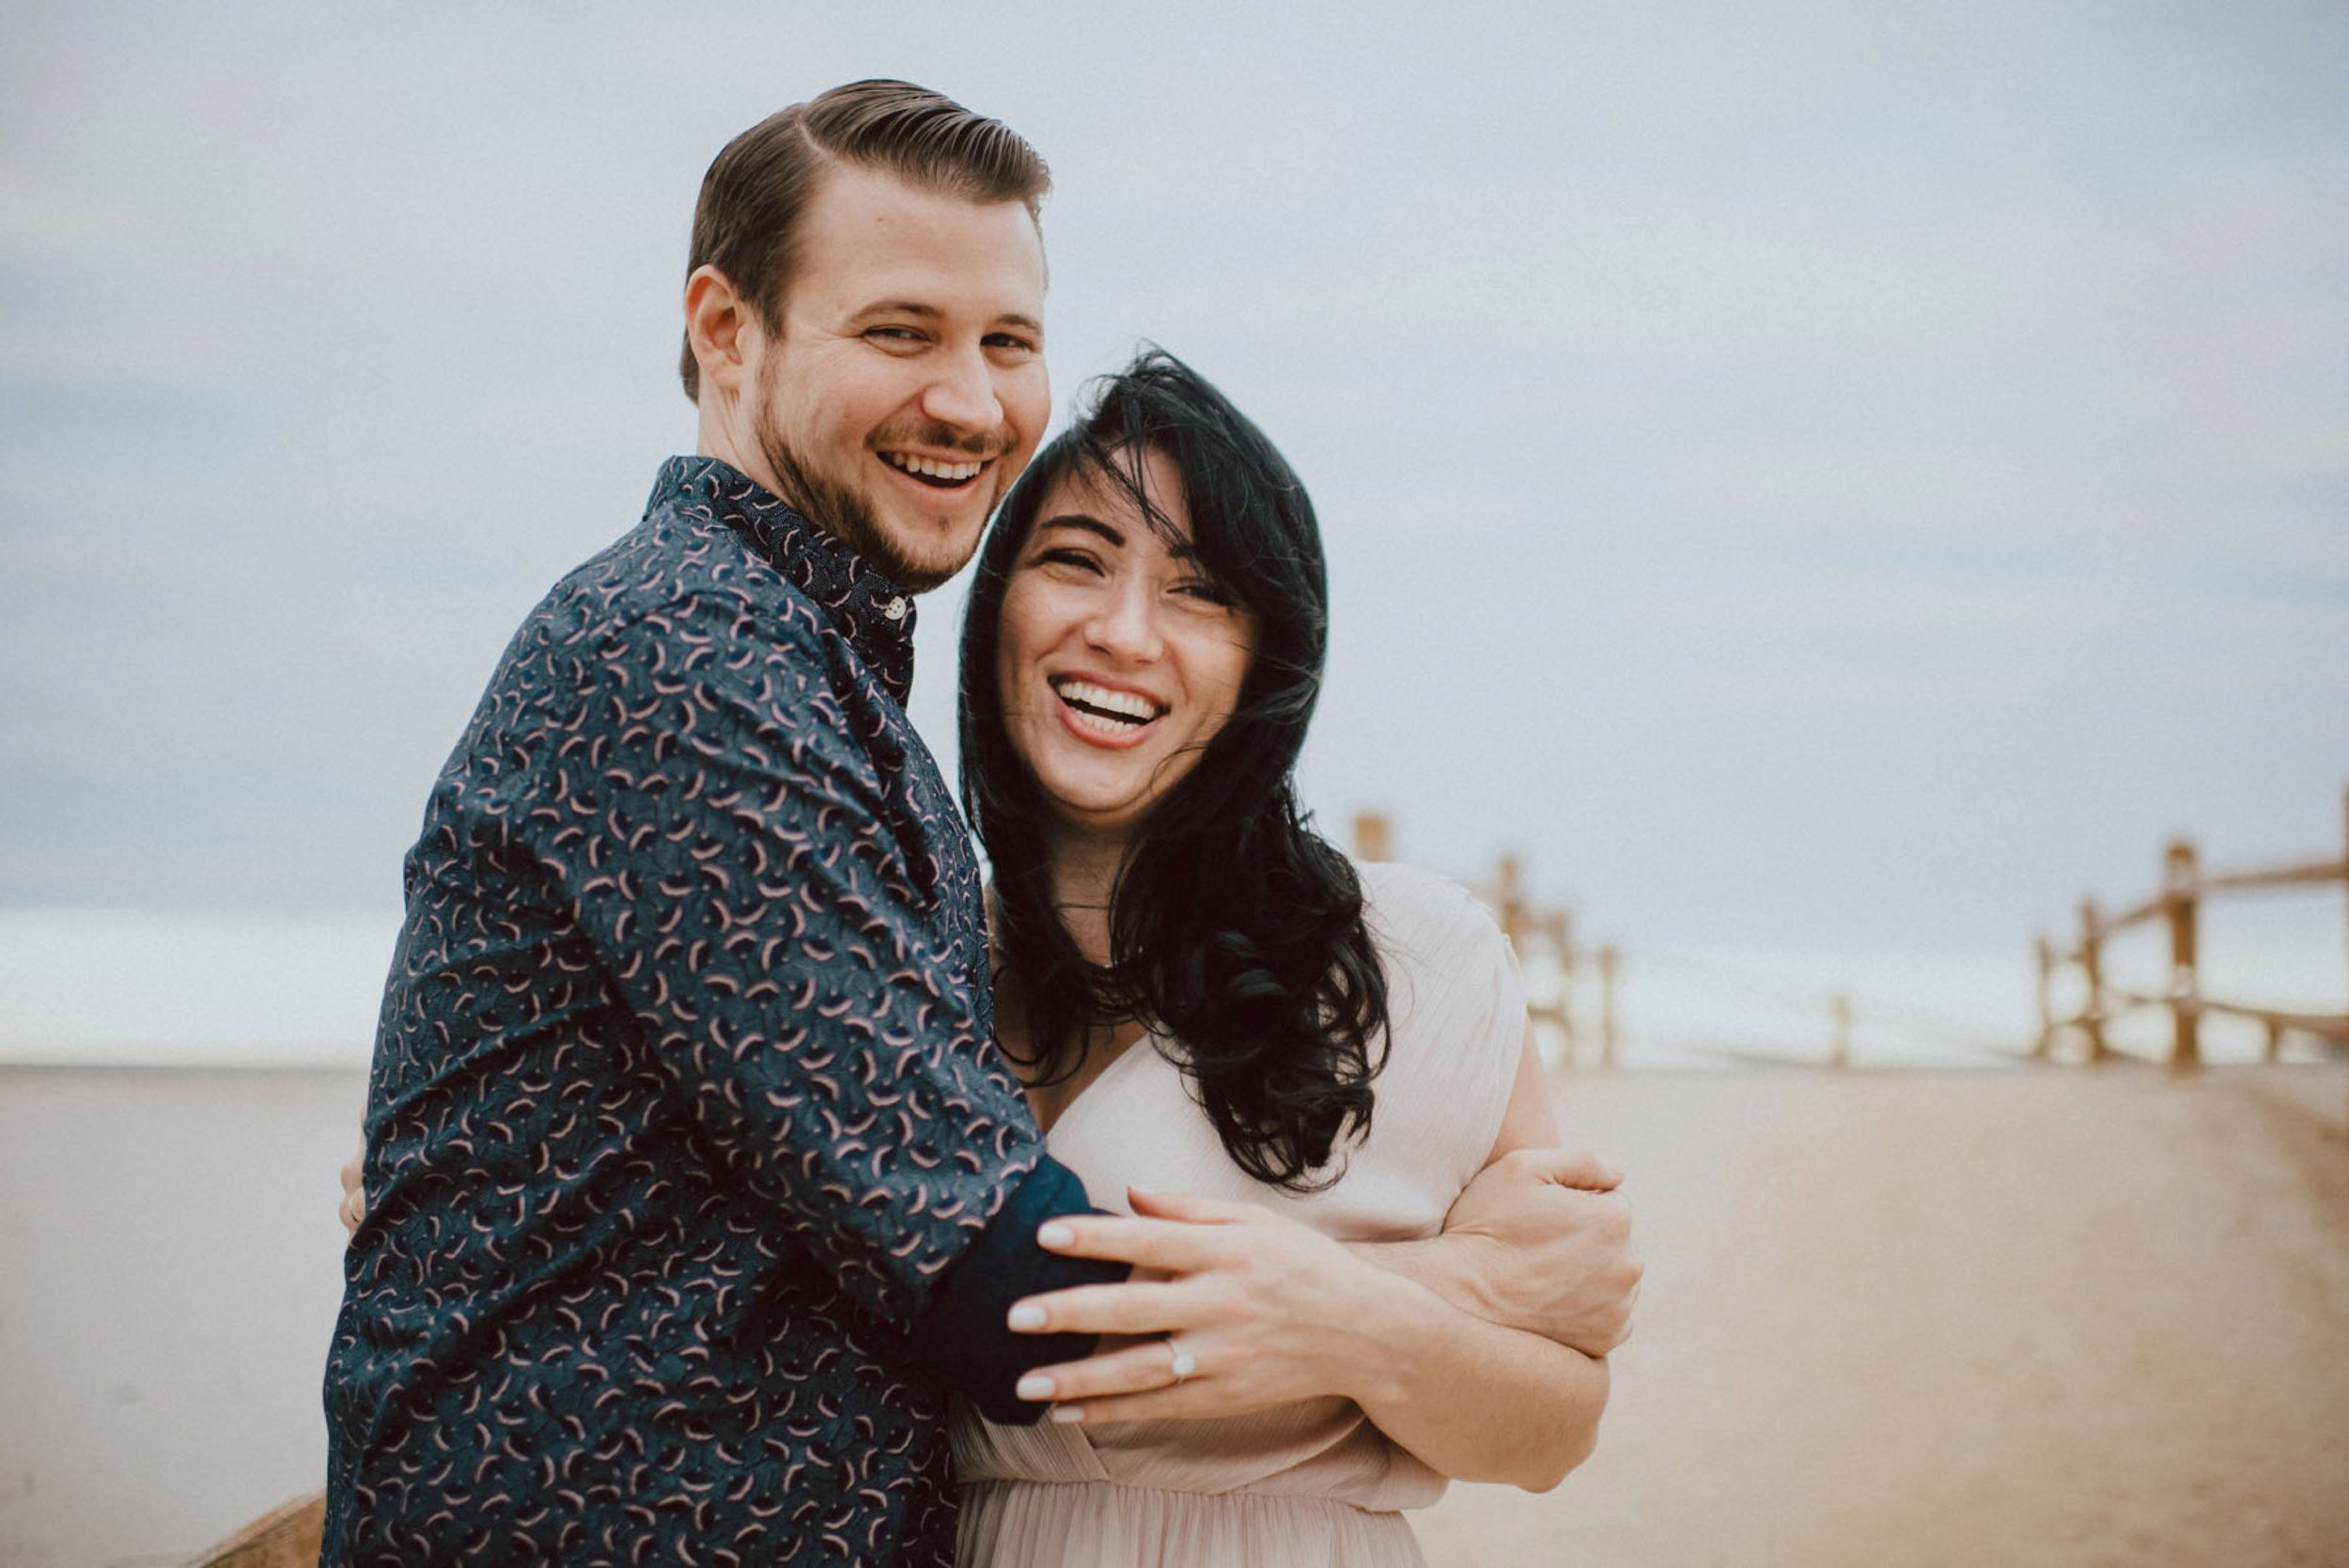 Long-beach-island-engagement-session-18.jpg